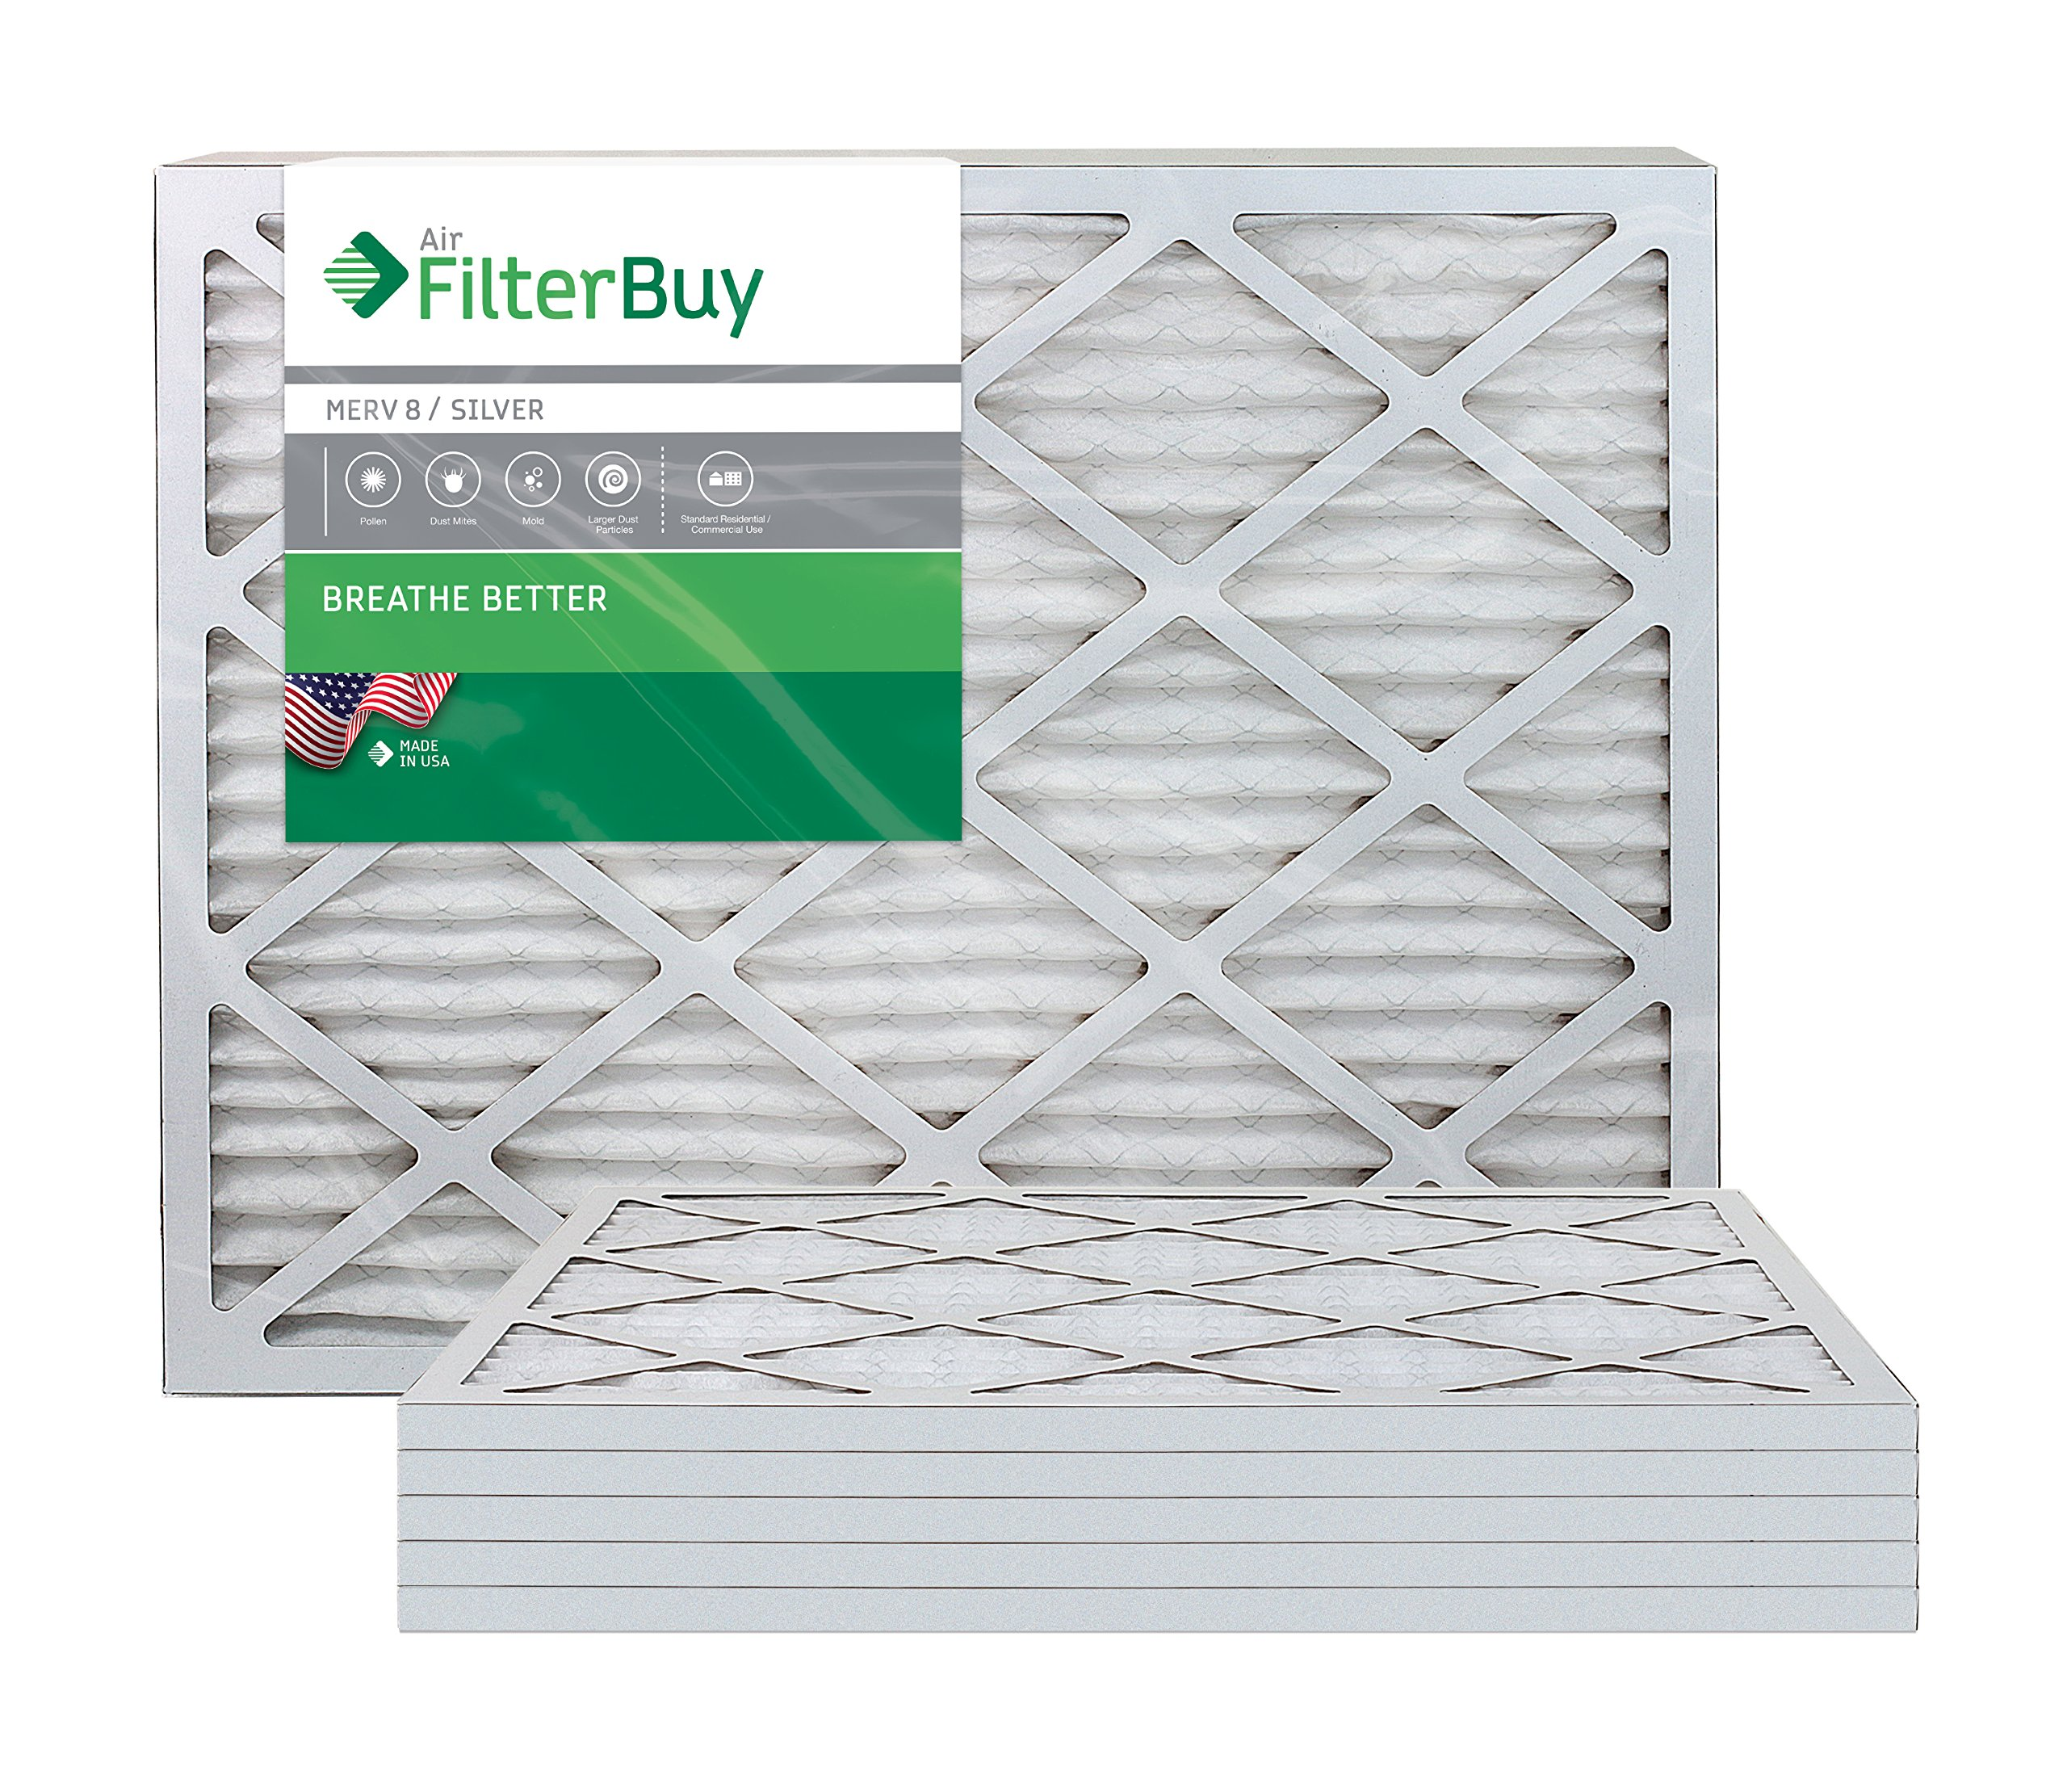 AFB Silver MERV 8 24x36x1 Pleated AC Furnace Air Filter. Pack of 6 Filters. 100% produced in the USA.